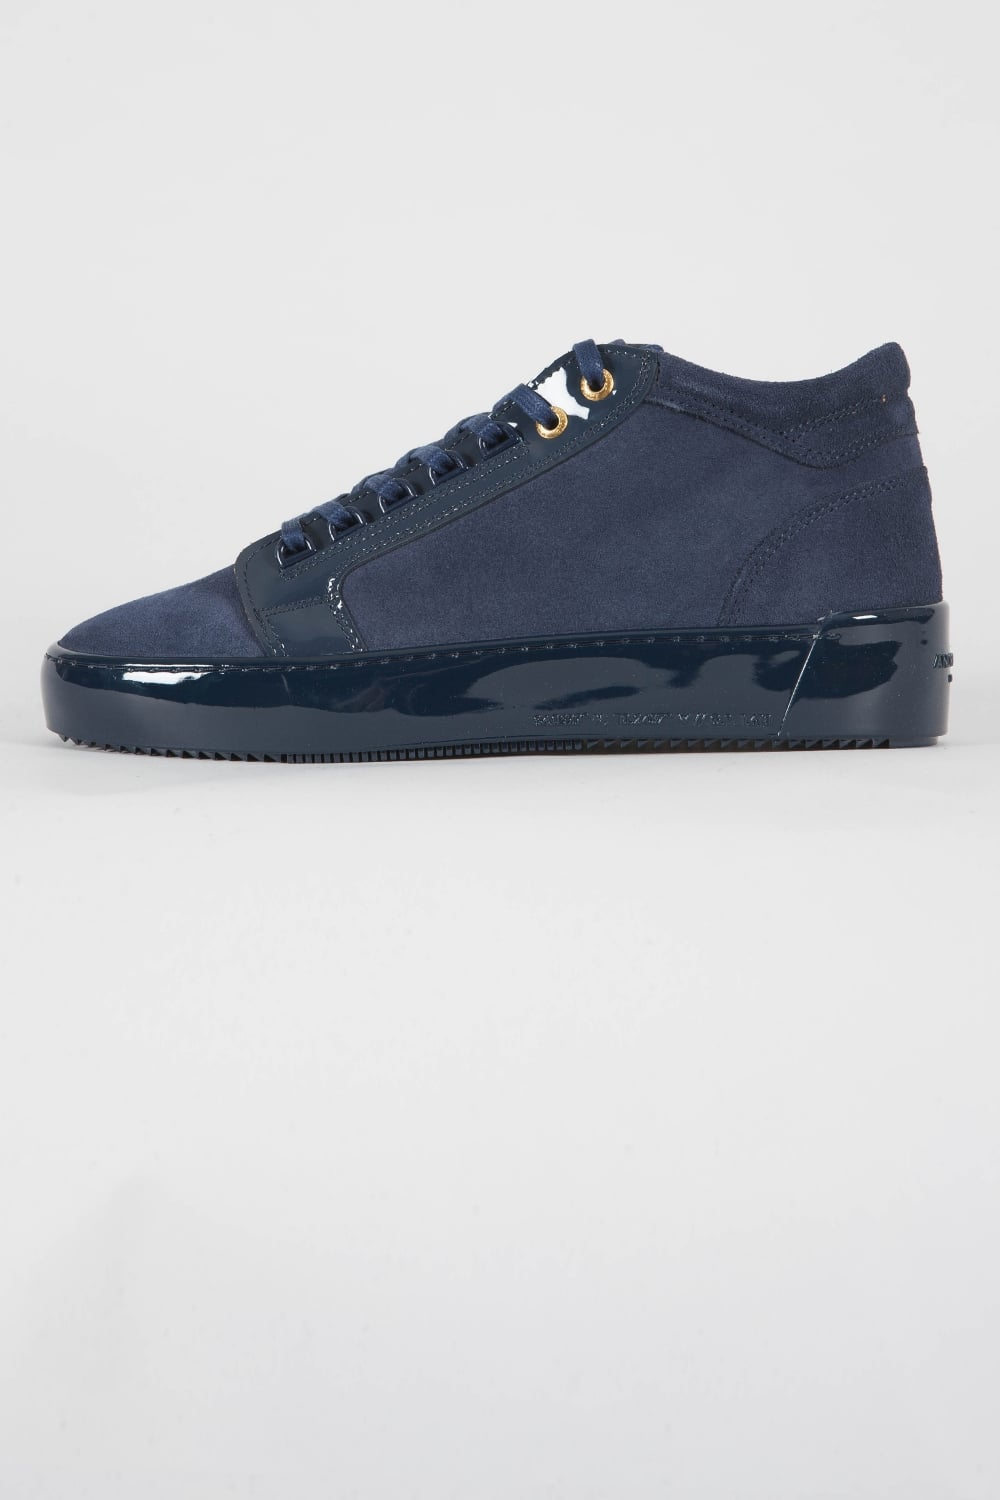 Android Homme Propulsion Mid Suede Trainers Navy Intro